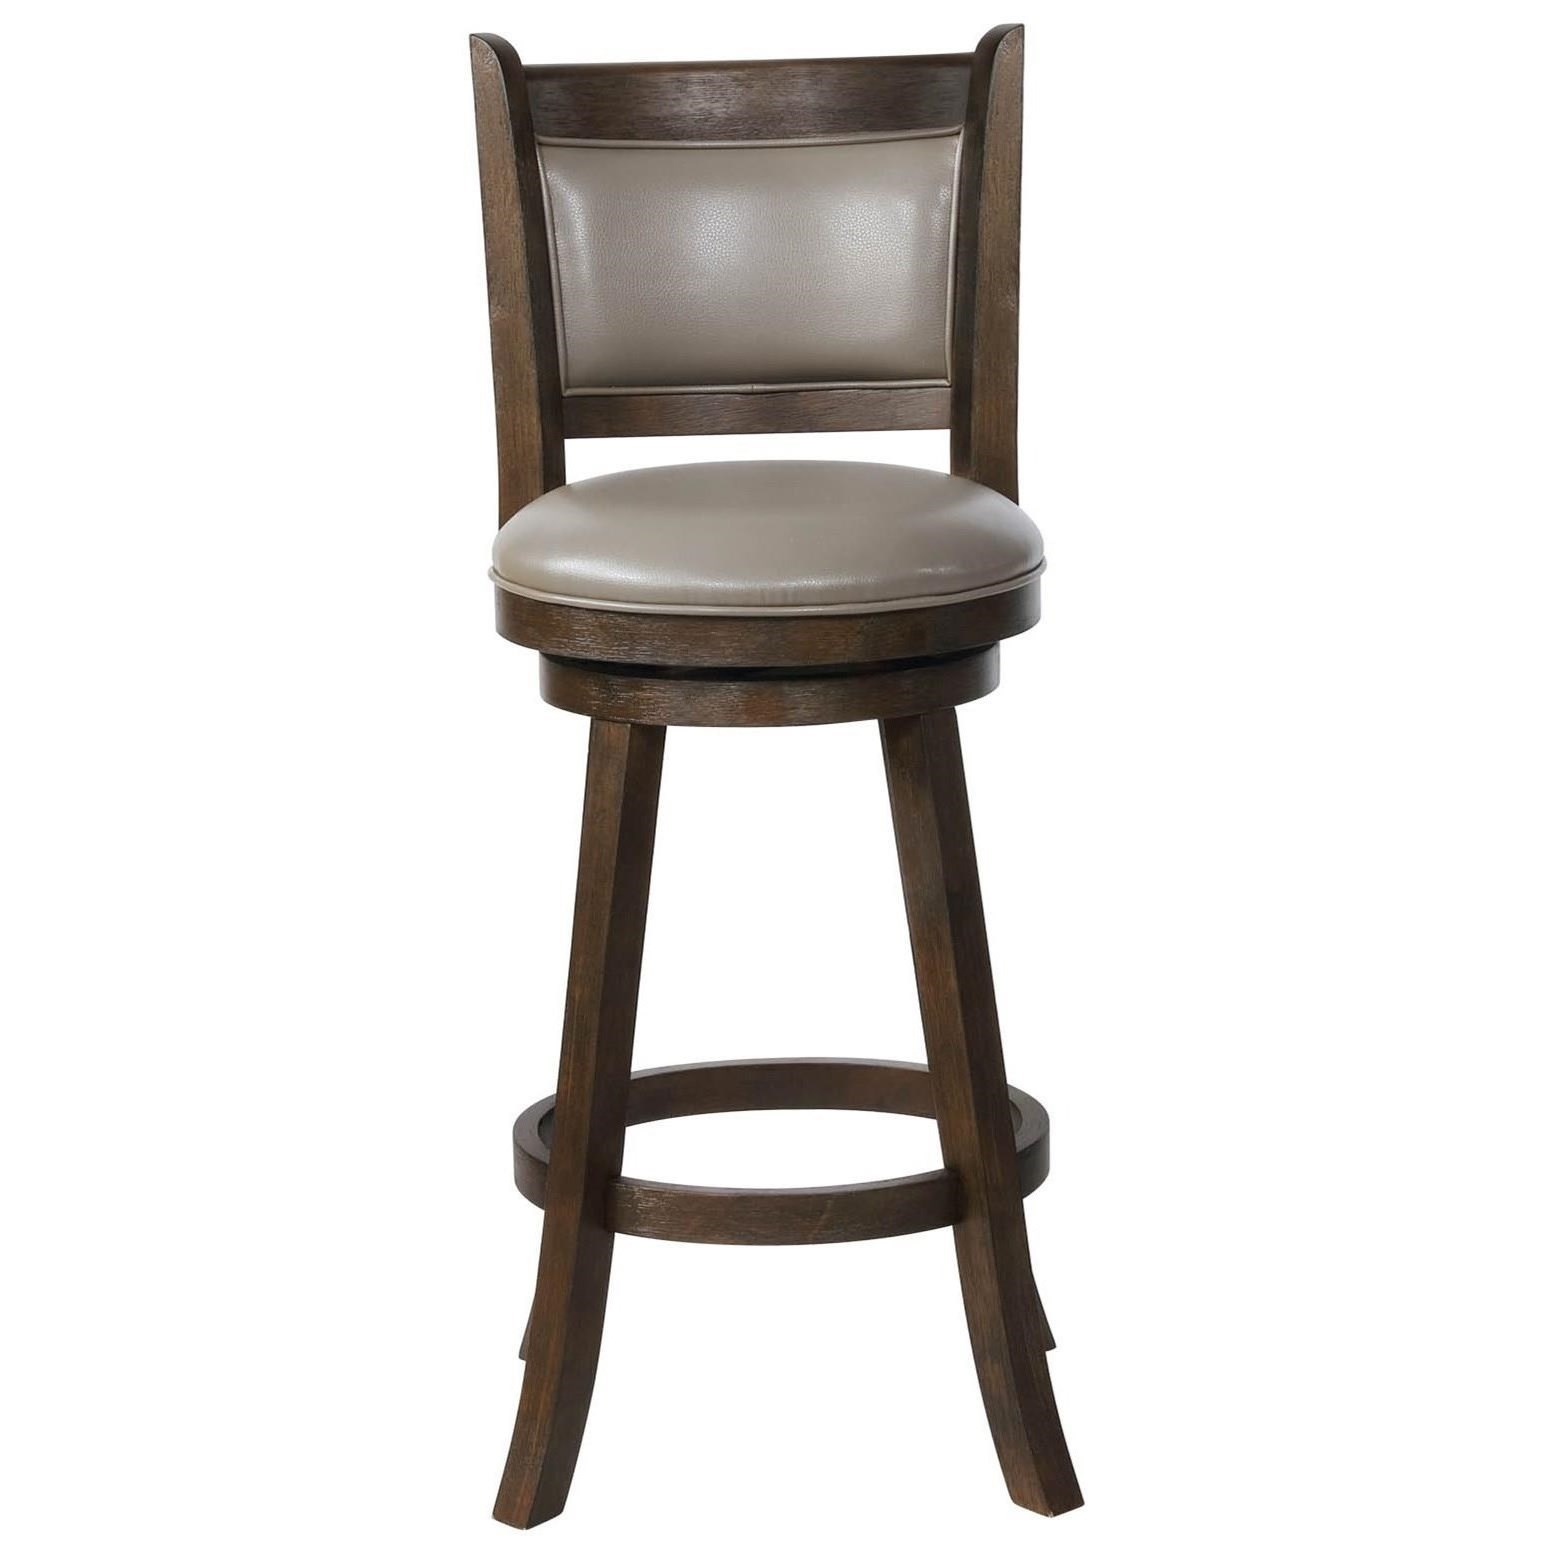 Metal Stools Bar Stools Cm Swivel Bar Stool With Upholstered Seat And Back By Crown Mark At Royal Furniture